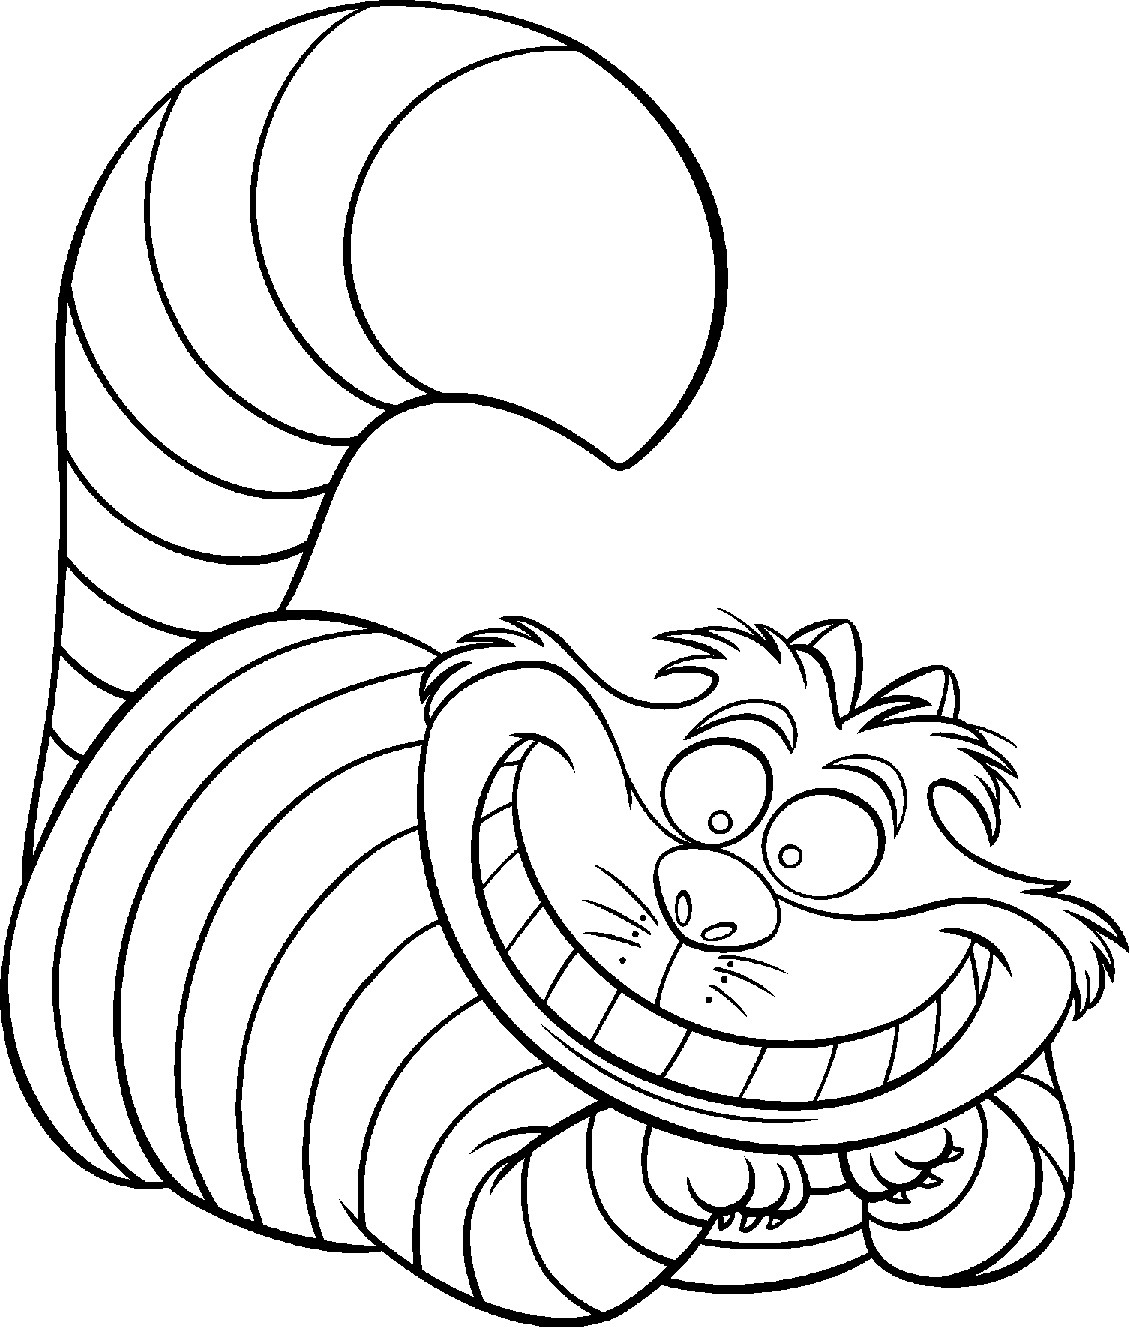 1129x1327 Print Out Coloring Pages